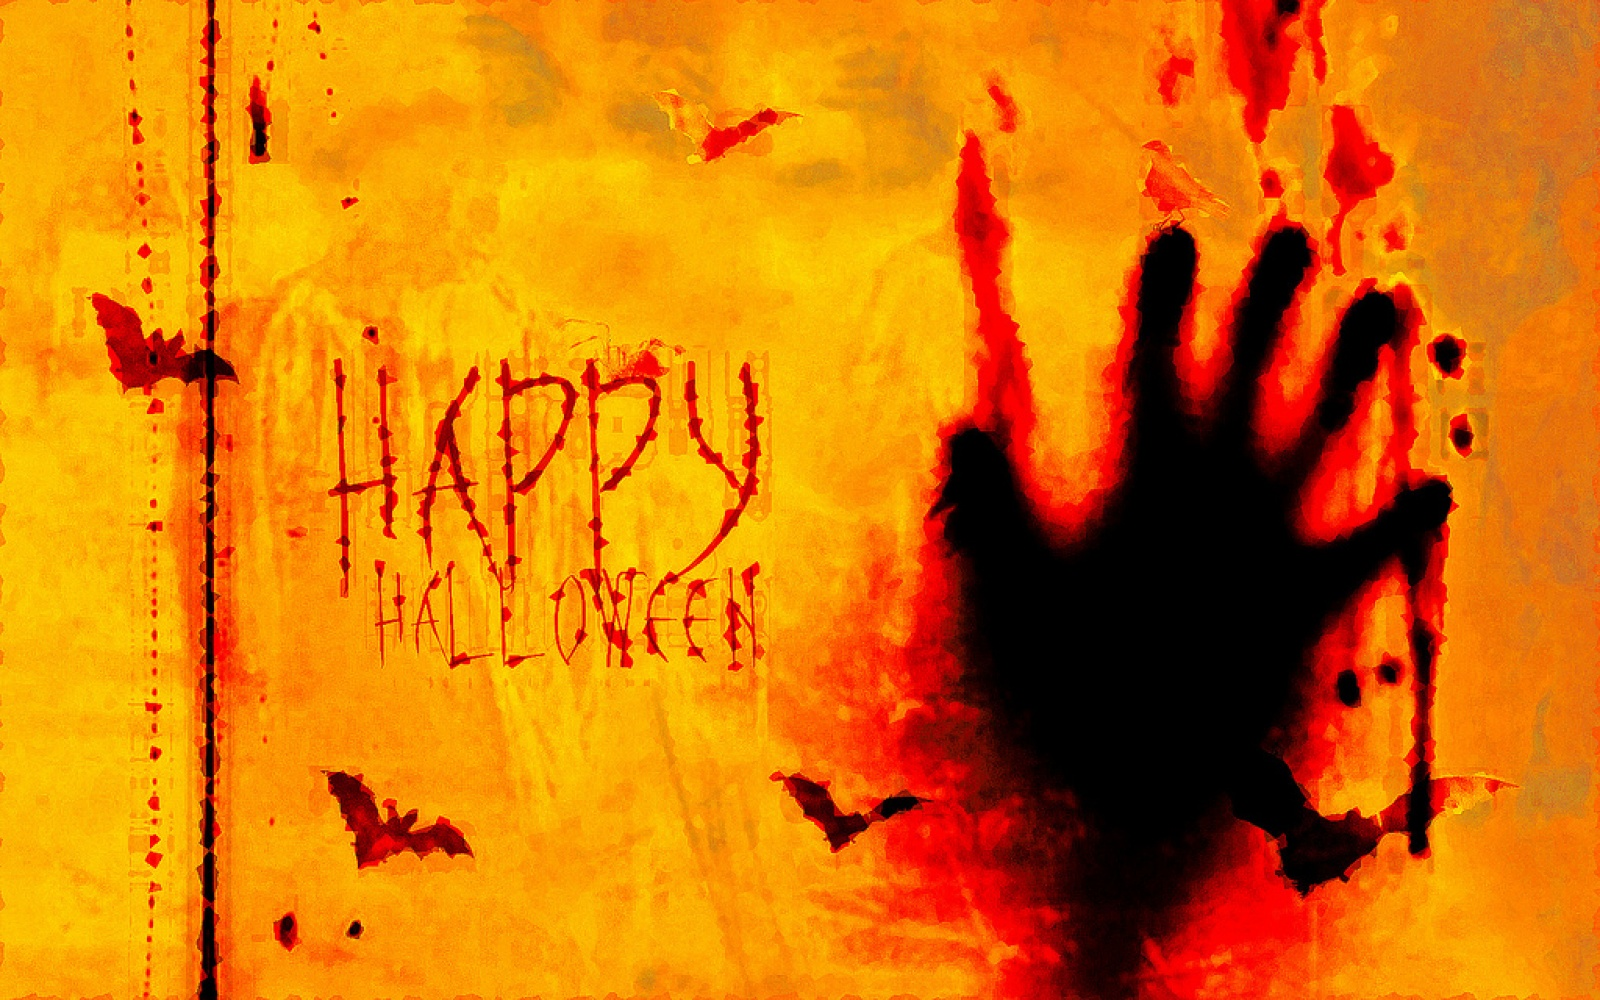 3d halloween desktop wallpaper   wwwwallpapers in hdcom 1600x1000